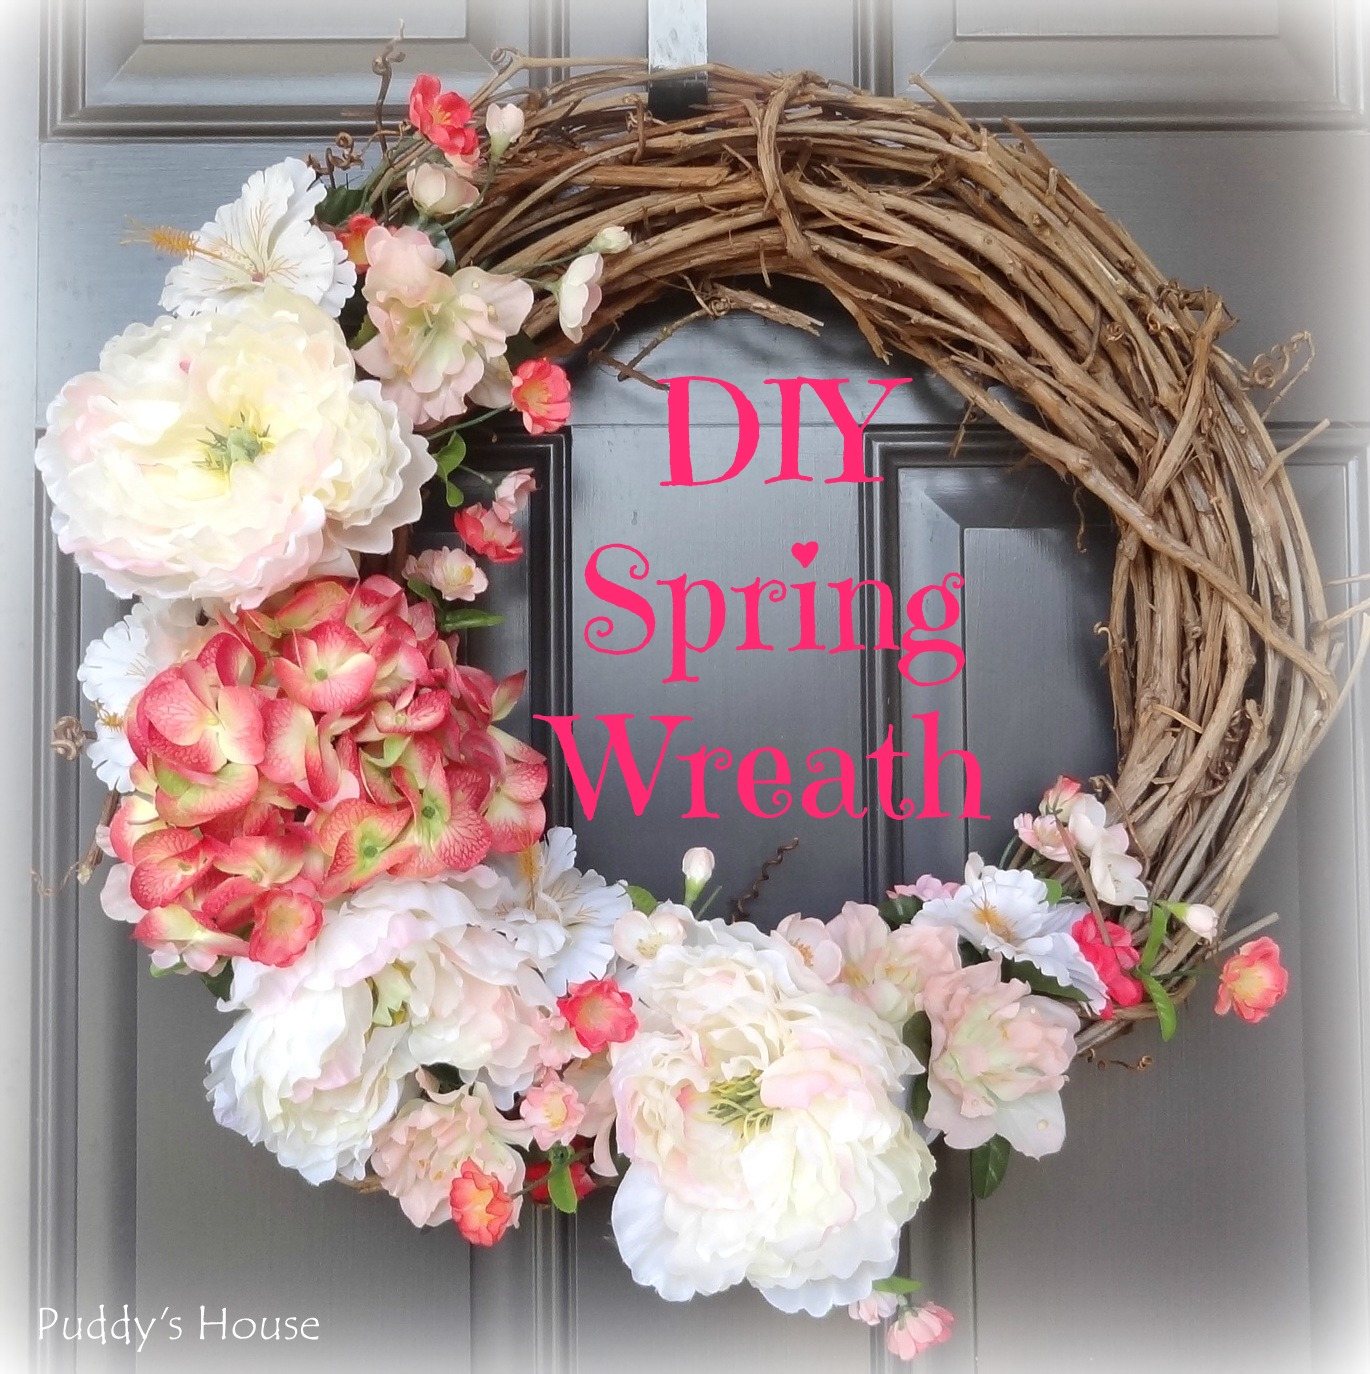 2014 diy spring wreath puddy 39 s house